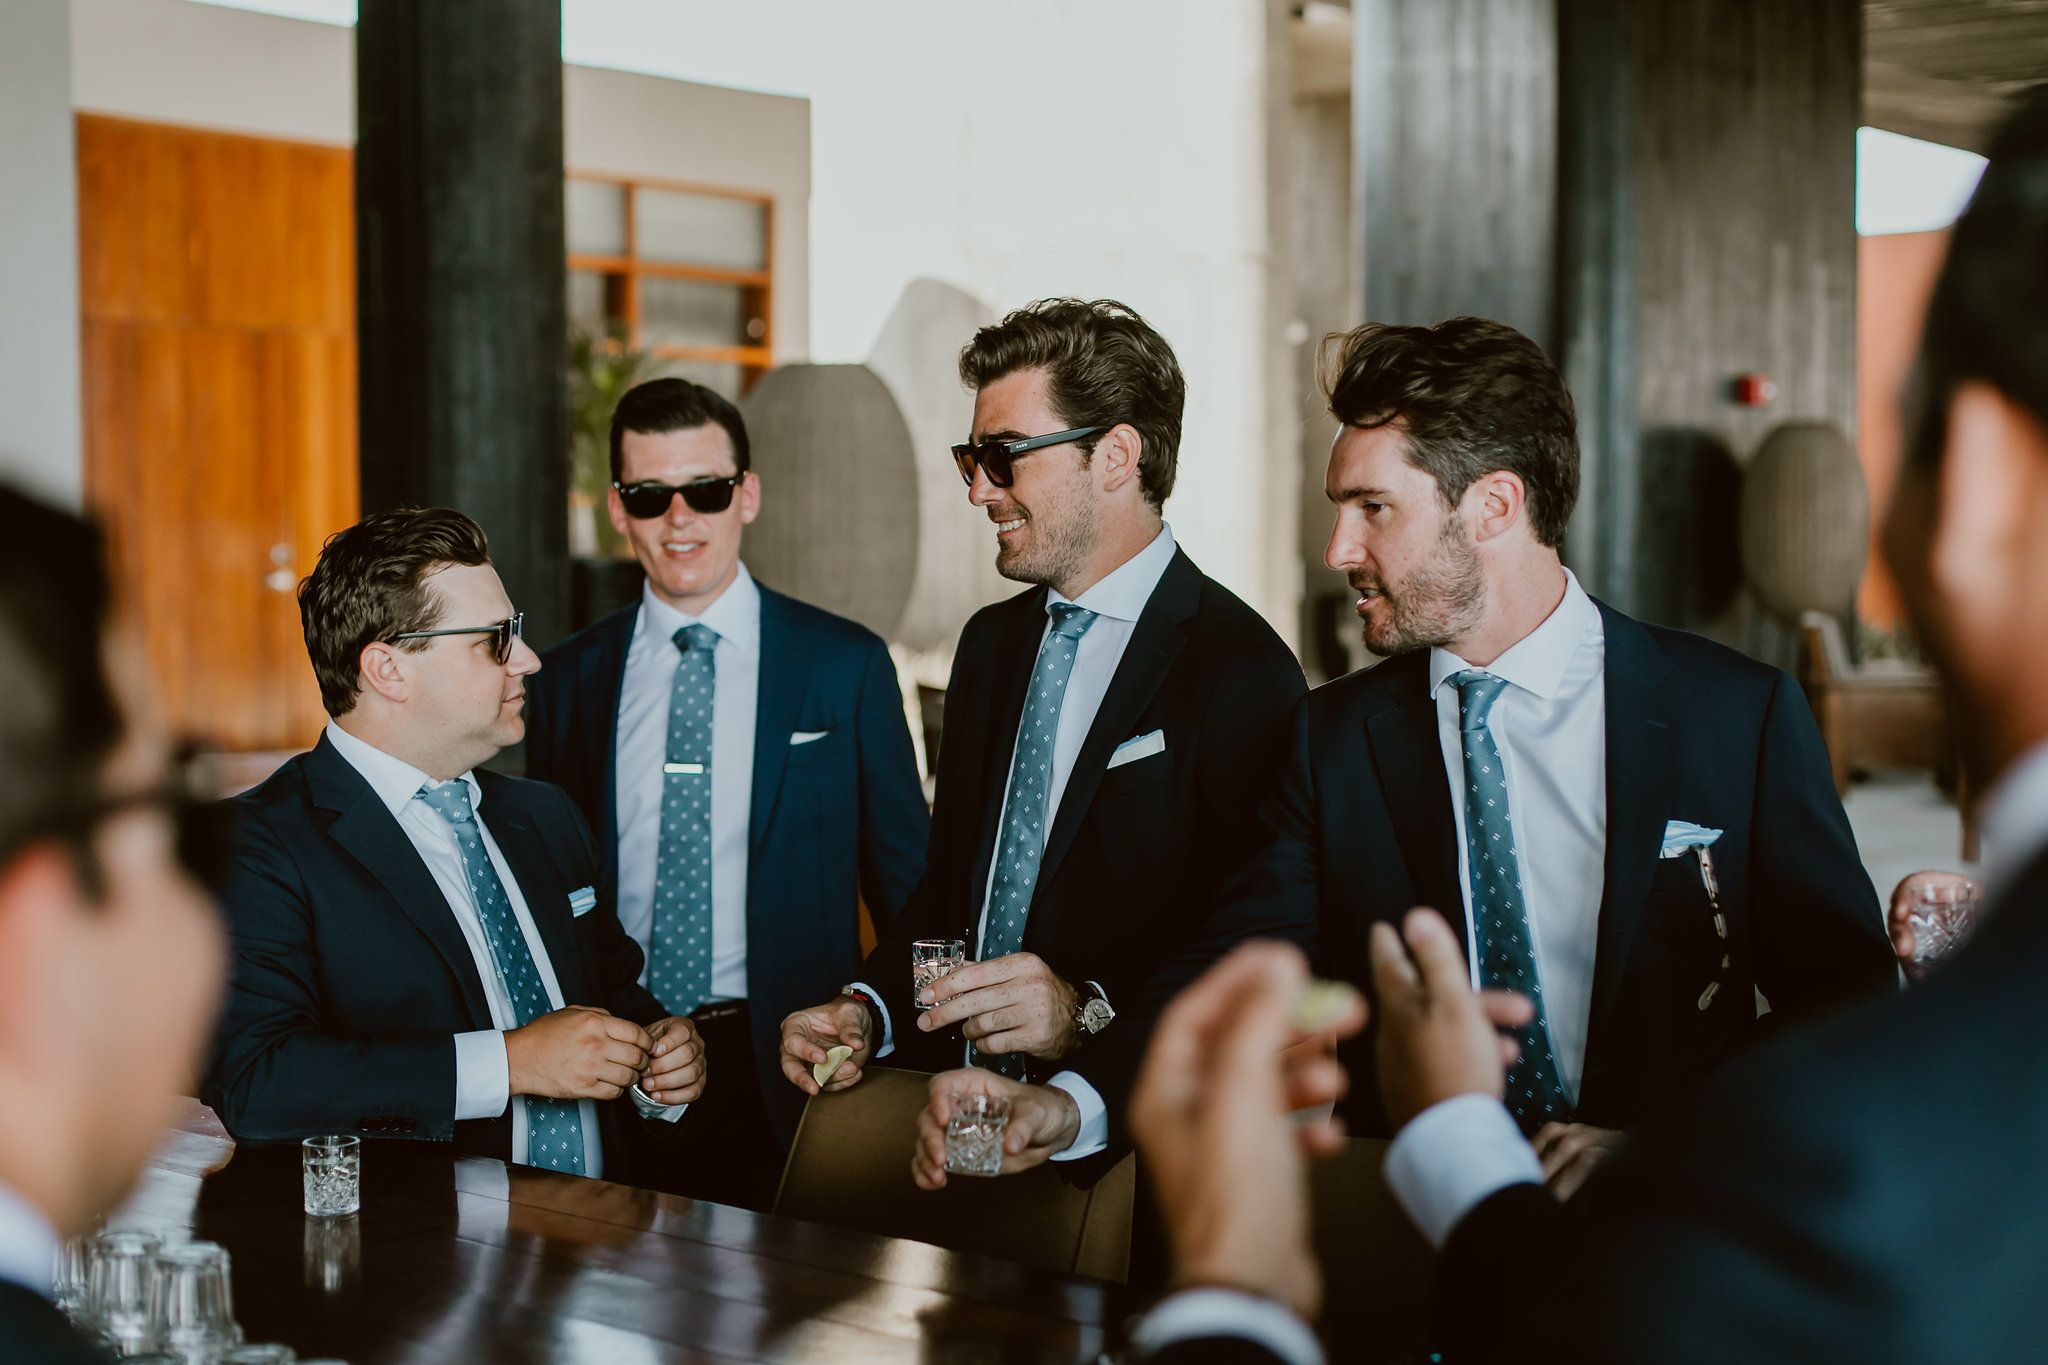 The groom and groomsmen having a shot right before the ceremony begins. This photo was taken at the Lobby bar at The Cape by THompson Hotels in Cabo San Lucas. Wedding Planning was done by Cabo Wedding Services.